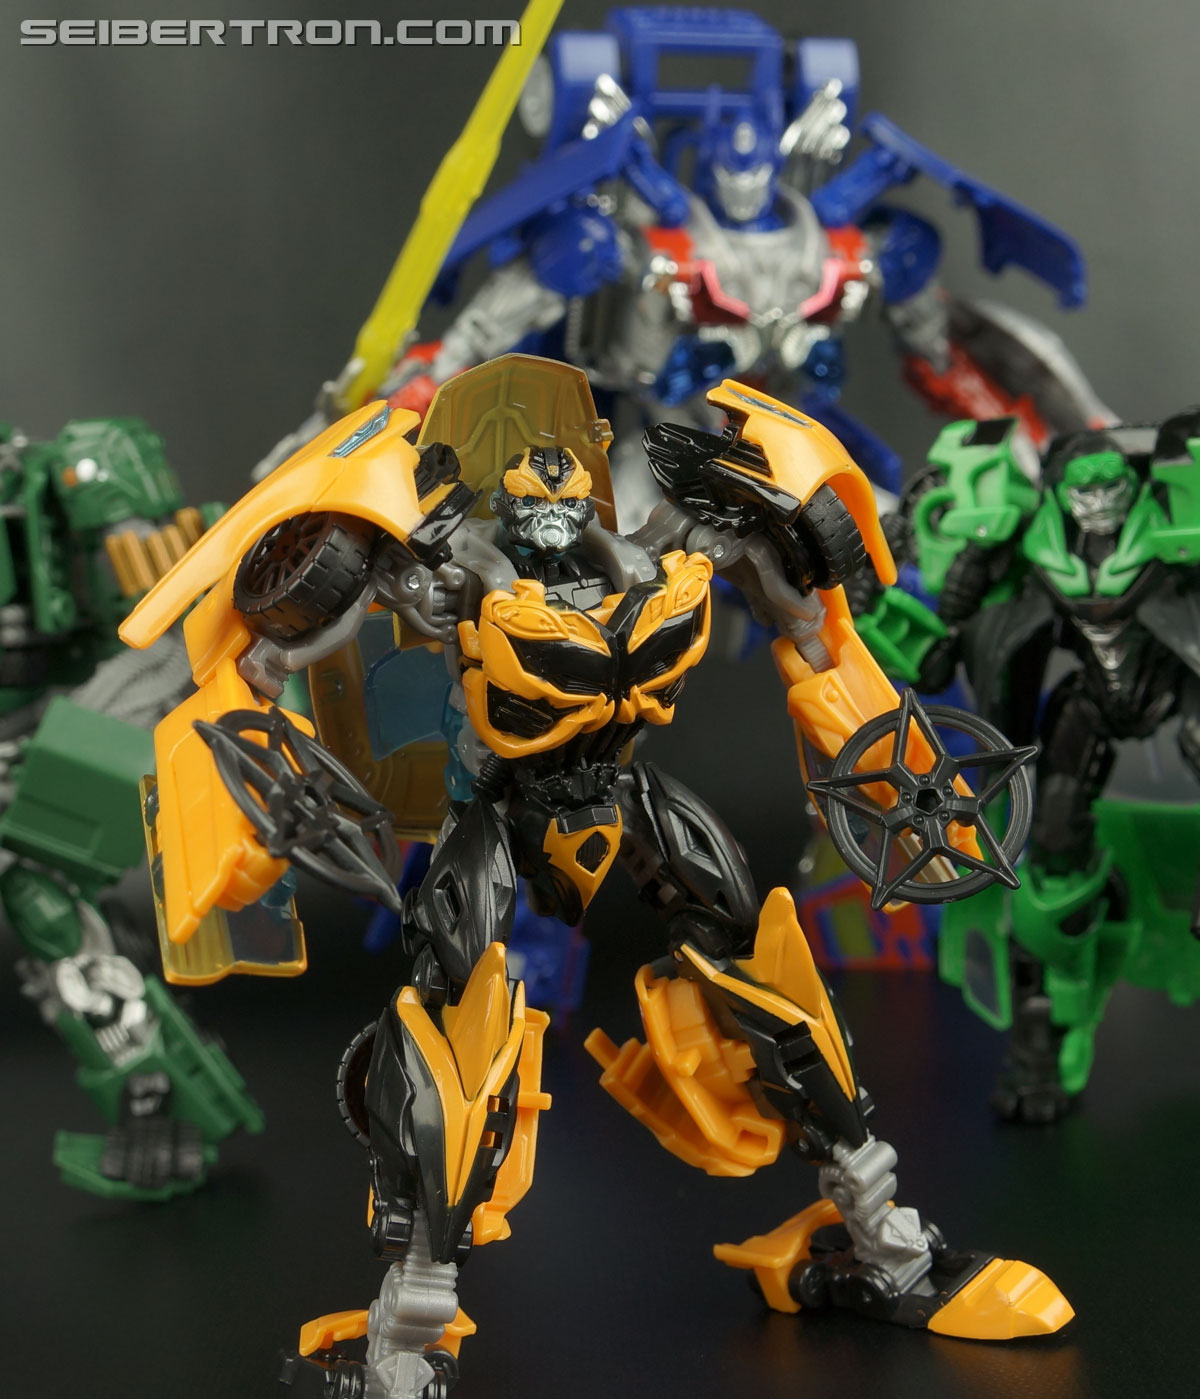 Transformers Age of Extinction: Generations Bumblebee (Image #176 of 190)